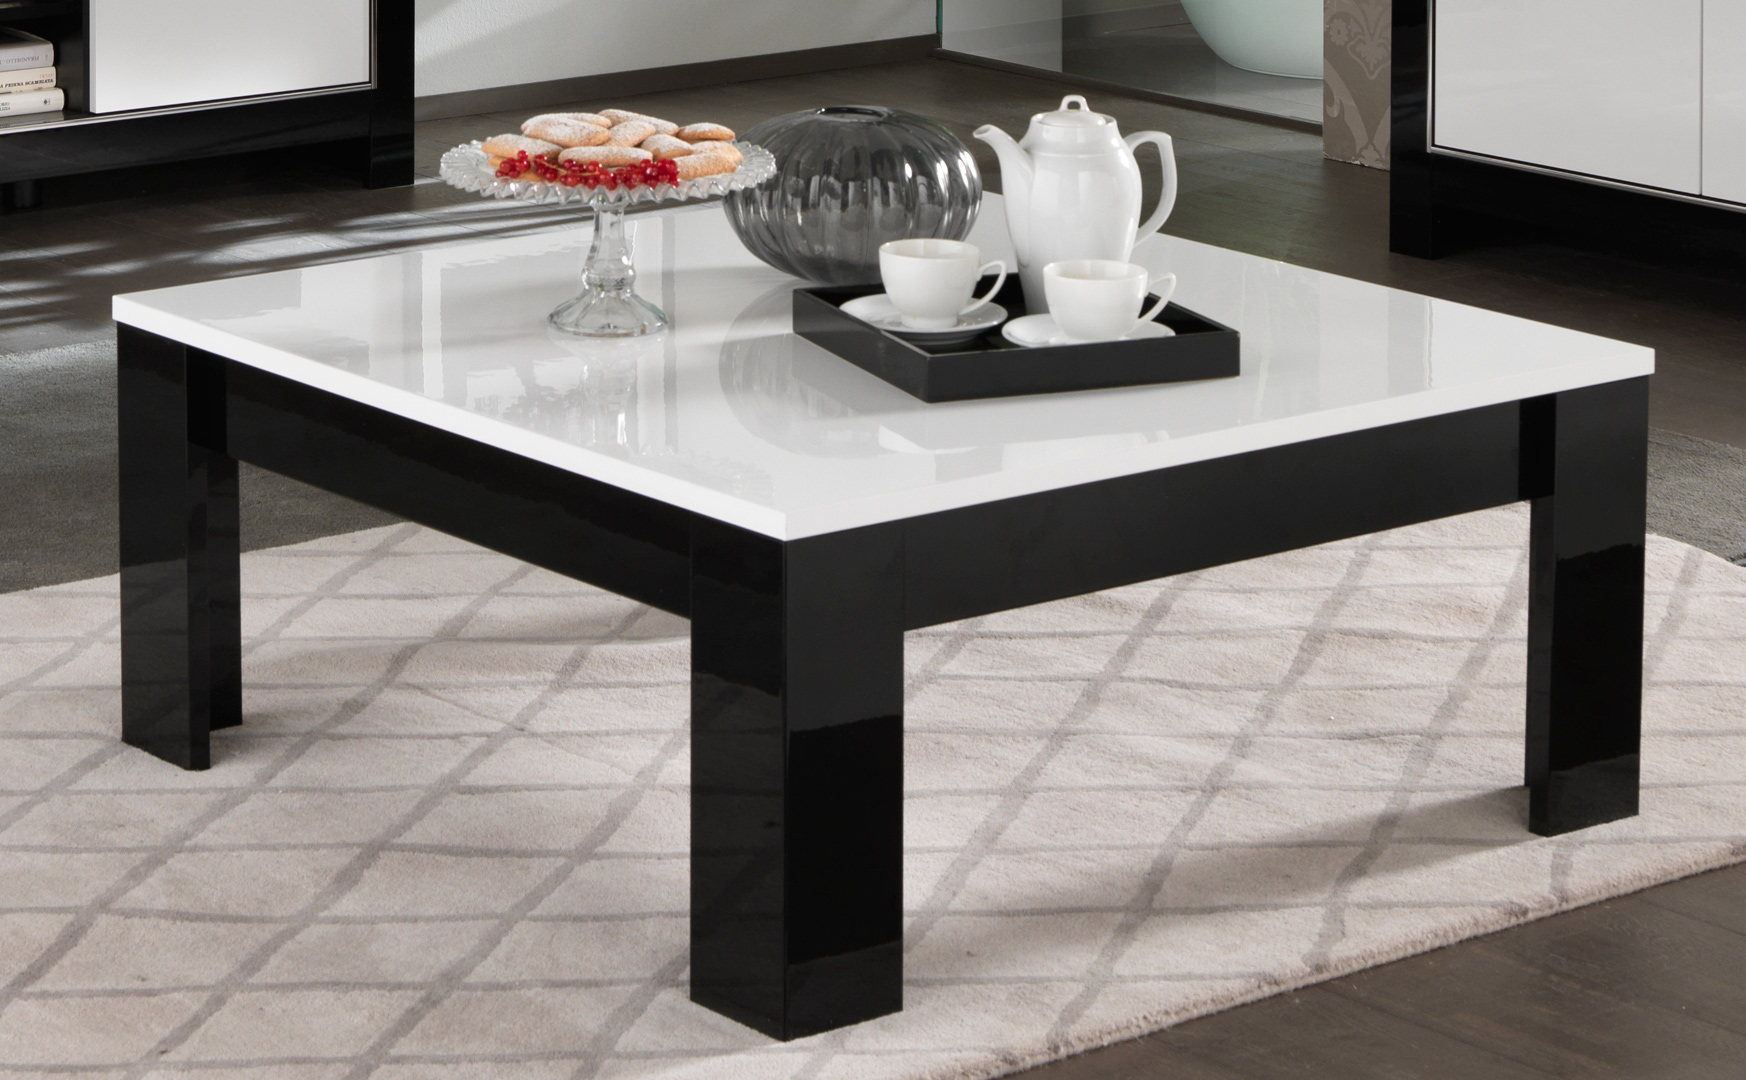 Table Basse Carrée Design Table Basse Carrée Design Laquée Blanc Noir Savana Matelpro